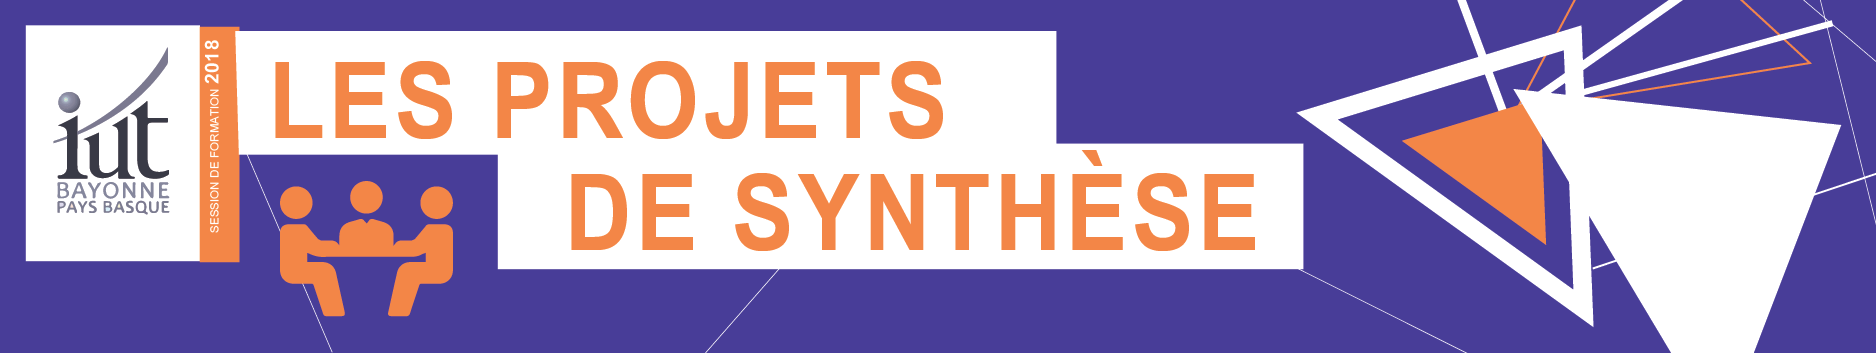 Les projets de synthese-INFO-Web-INFO-iut-bayonne-paysbasque